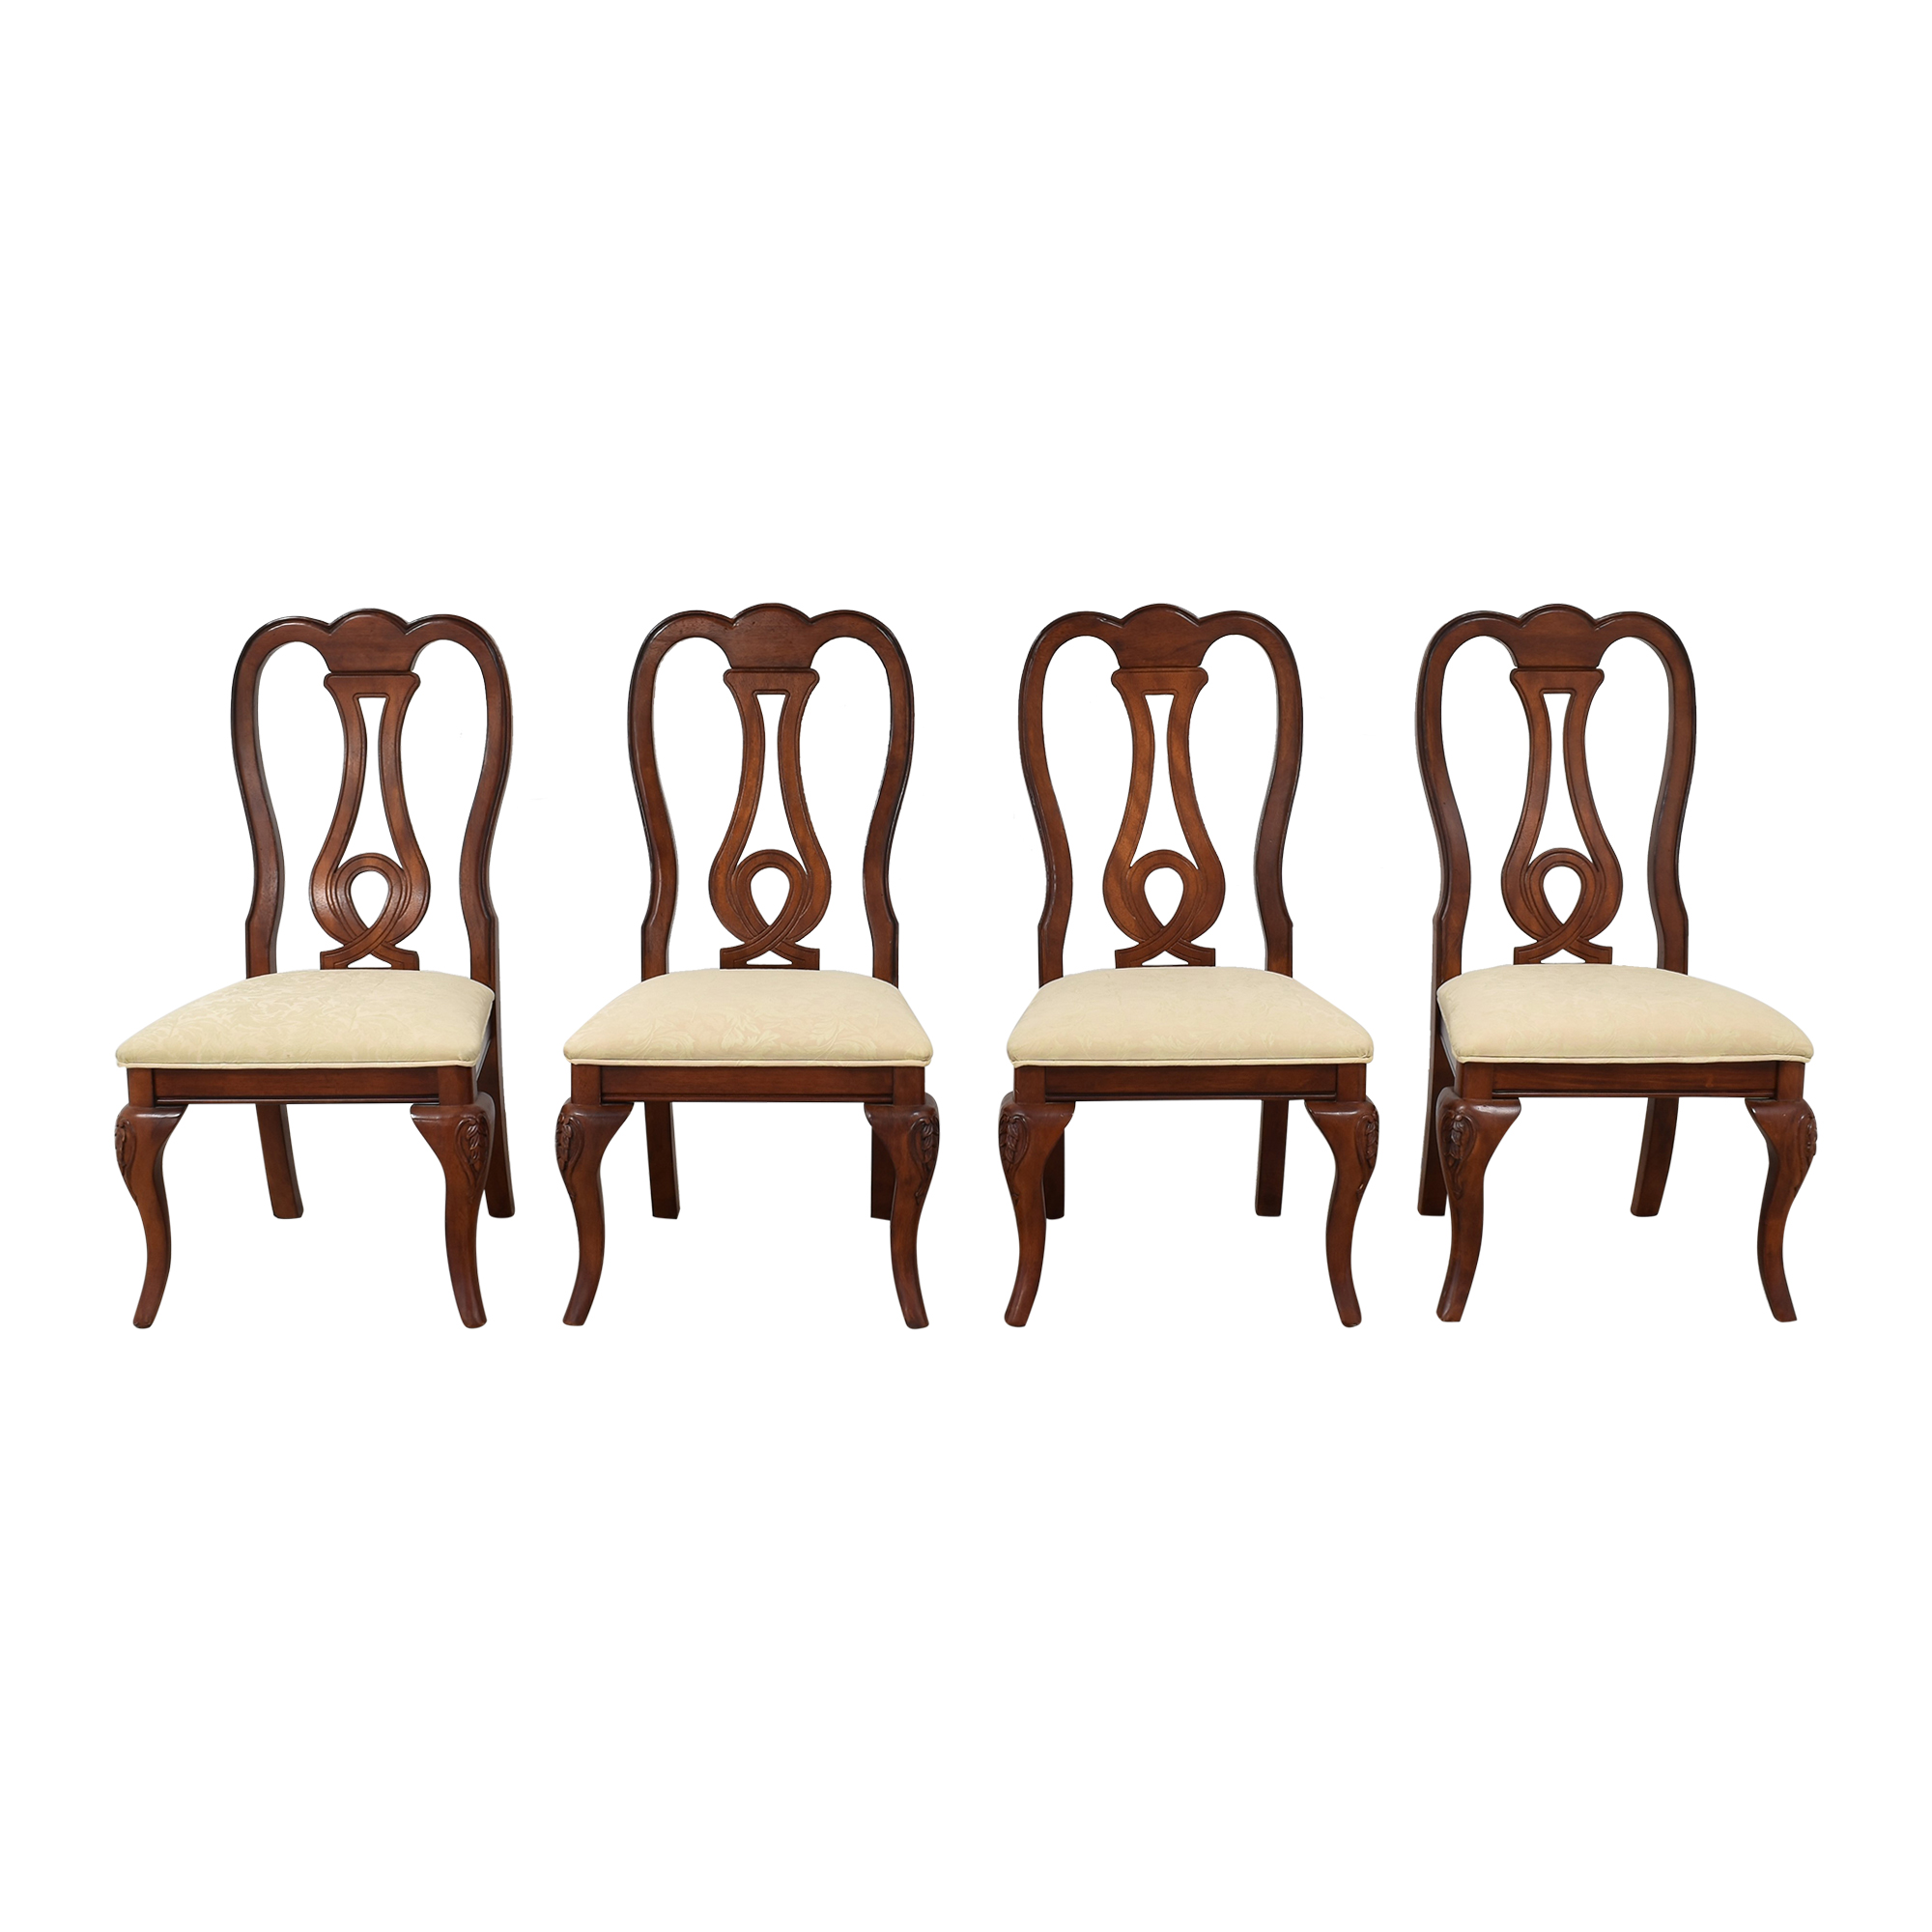 Legacy Classic Furniture Legacy Classic Queen Anne Dining Side Chairs on sale